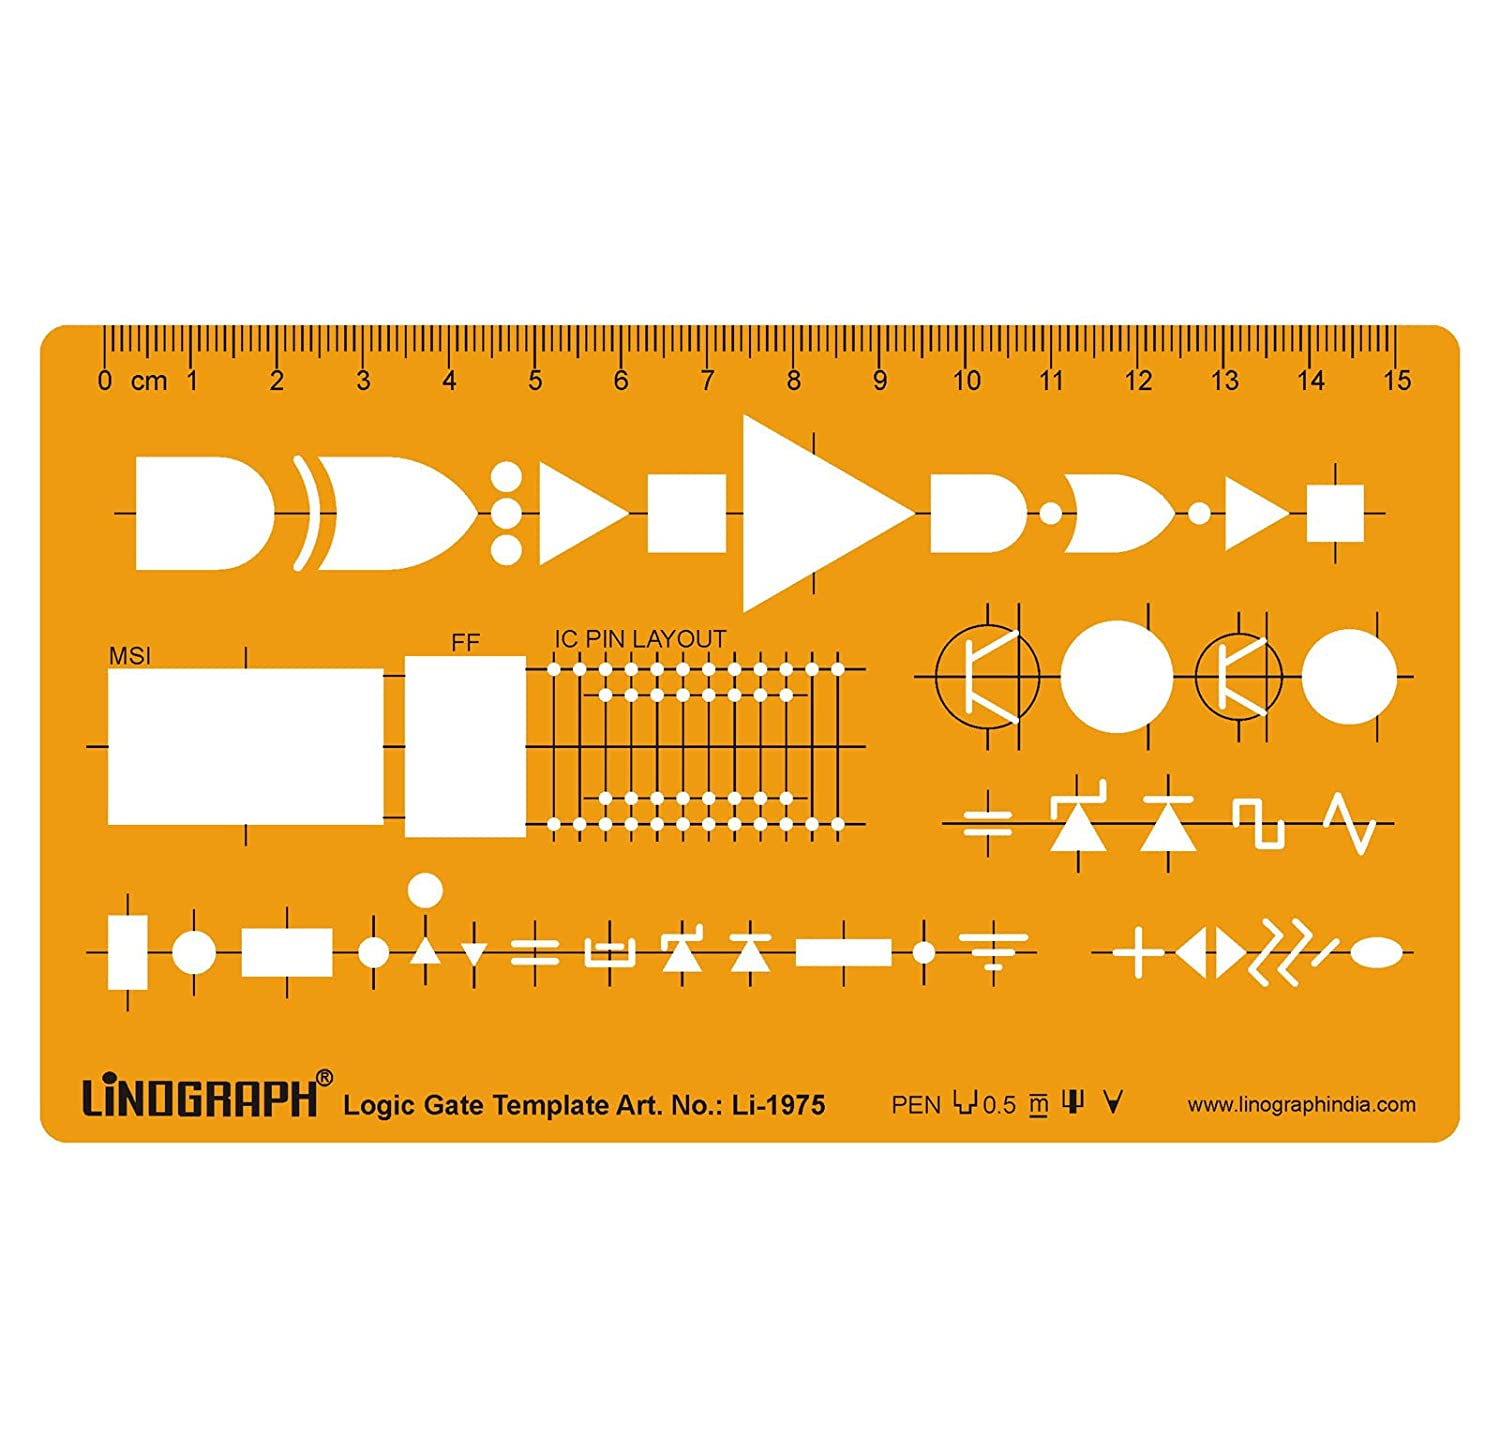 Logic Gate Template Drafting And Design Templates 2 Way Switch Stencil Symbols Technical Drawing Scale Office Products